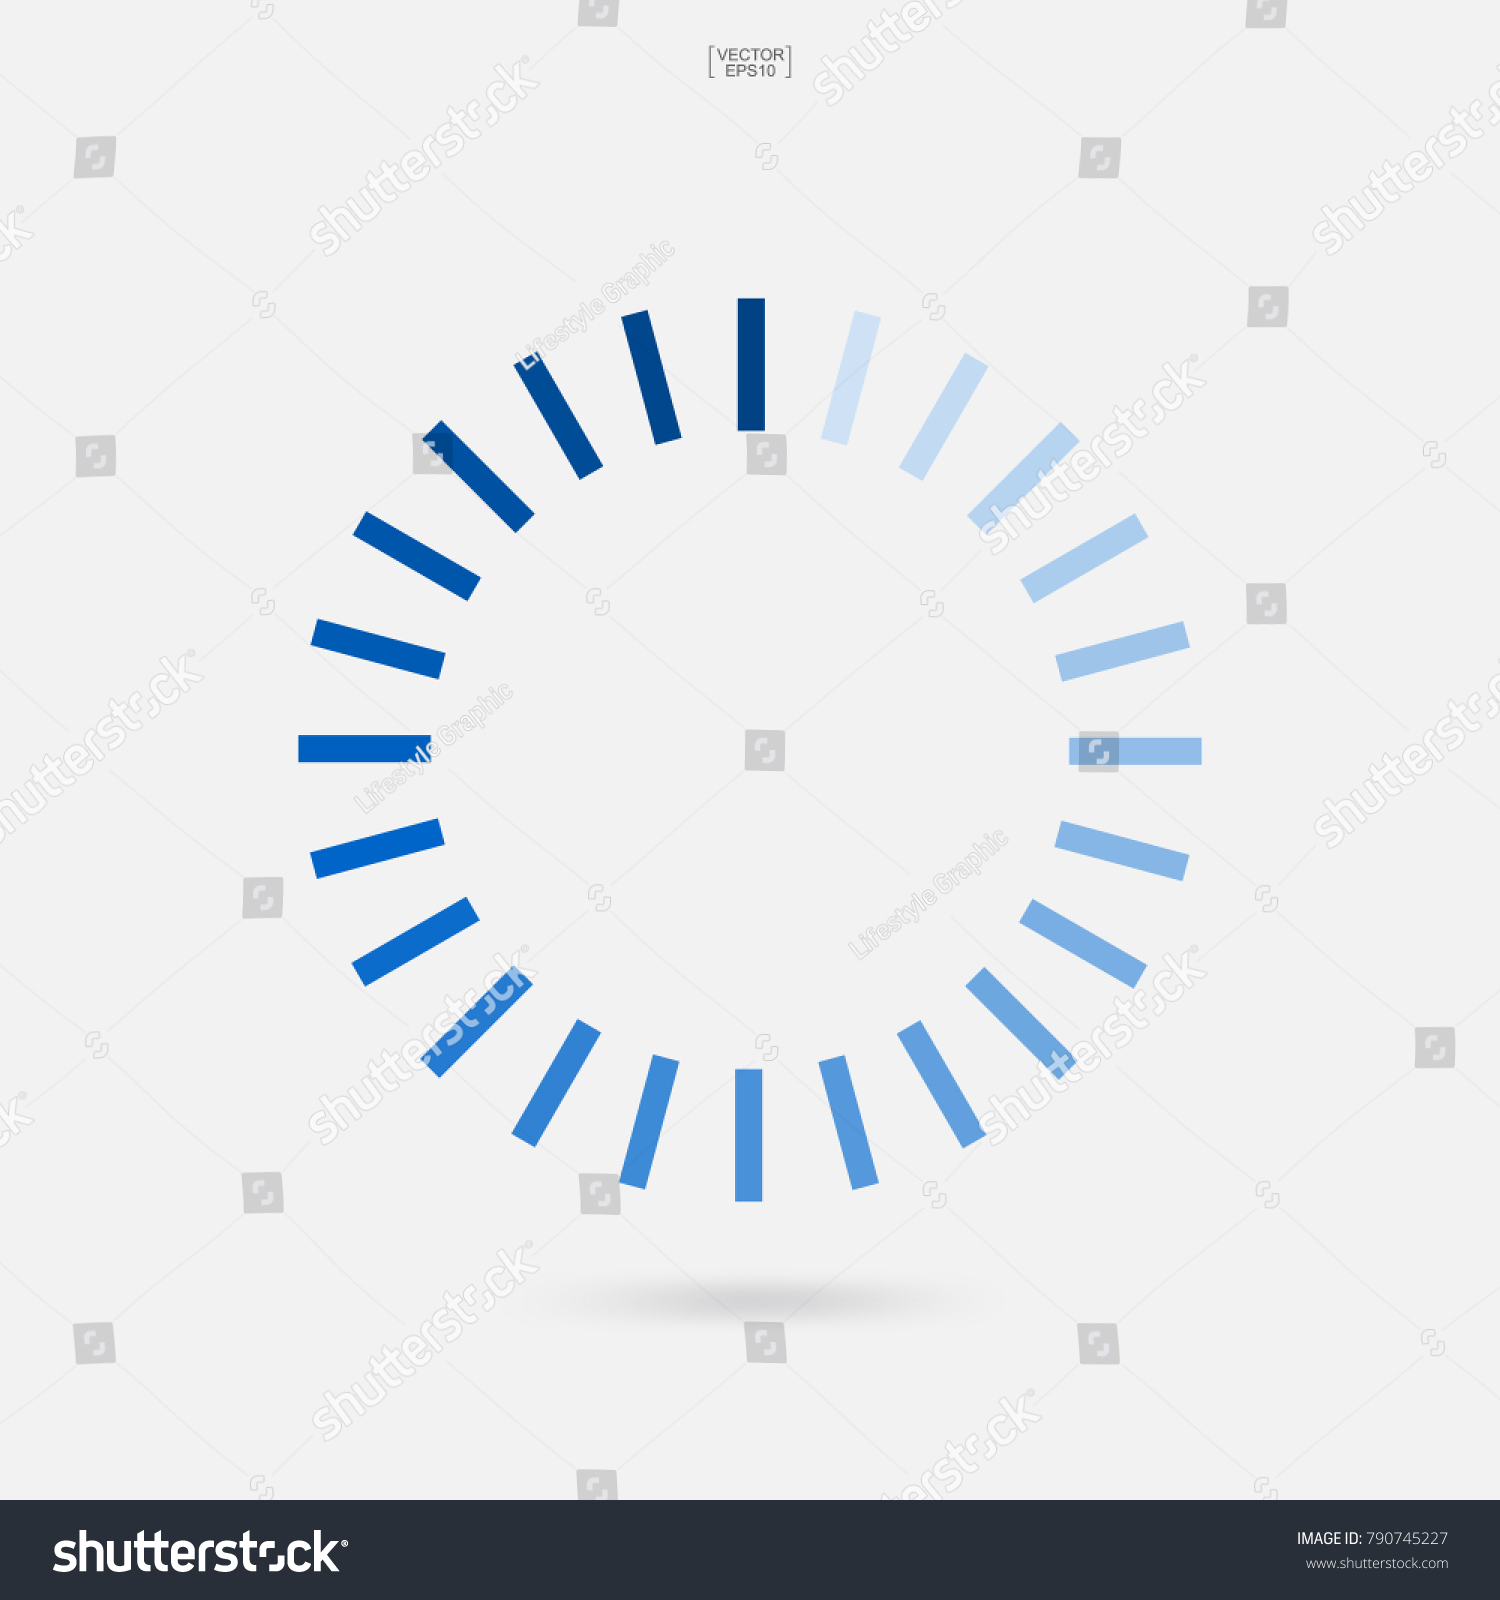 Loading symbol abstract spinner icon web stock vector 790745227 loading symbol abstract spinner icon web stock vector 790745227 shutterstock biocorpaavc Image collections